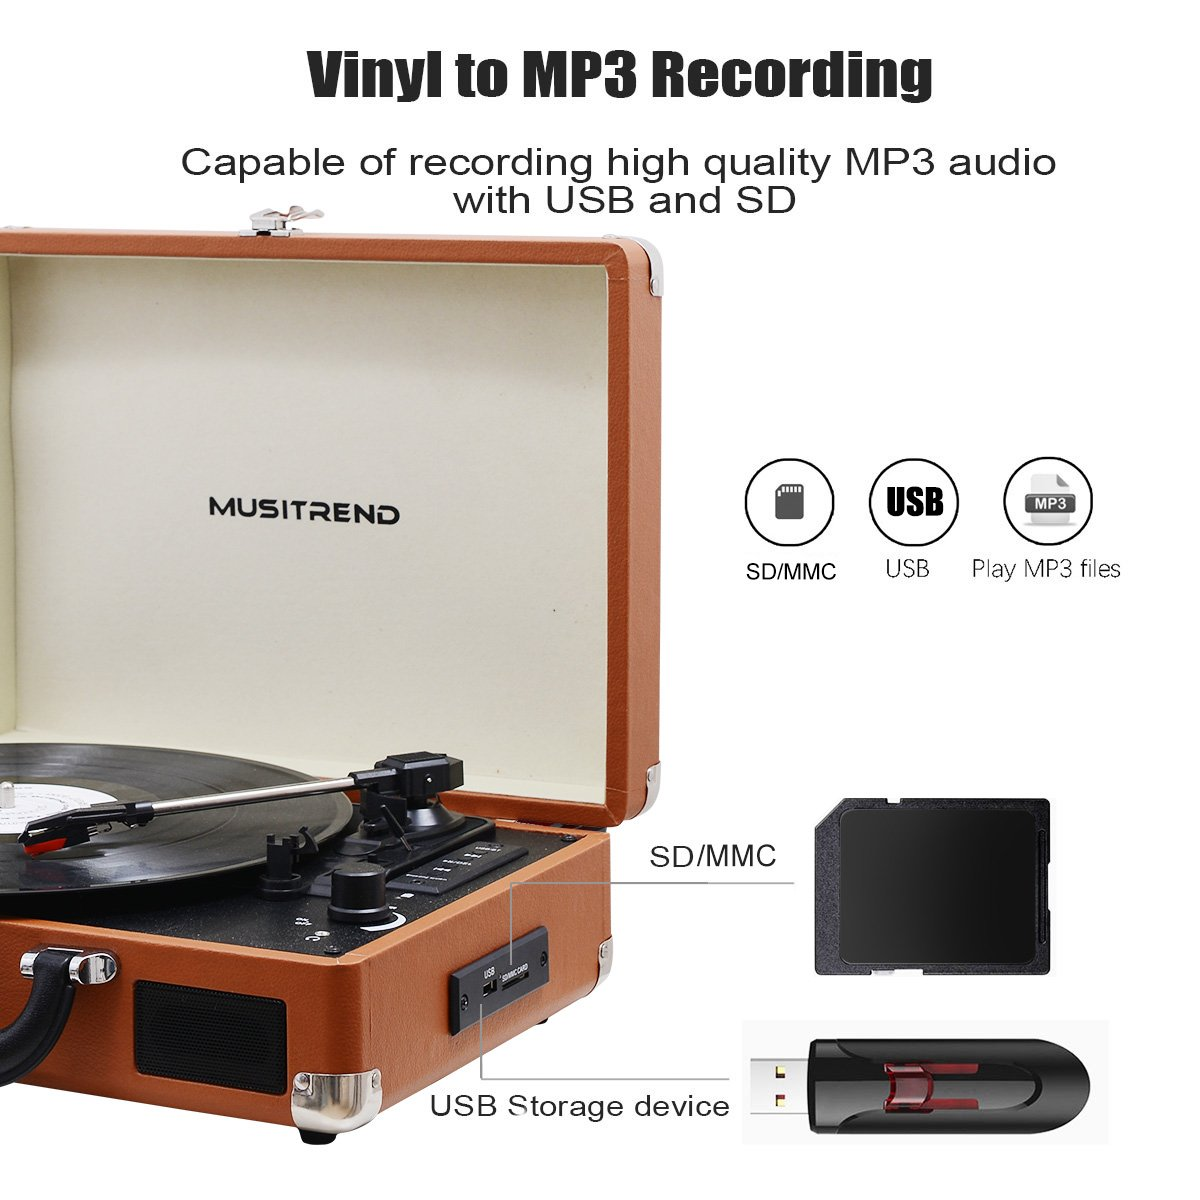 Musitrend Bluetooth Record Player Portable Suitcase Turntable with Built-in Speakers, USB/SD Recorder, Rechargable battery, Headphone Jack, RCA line out, Brown